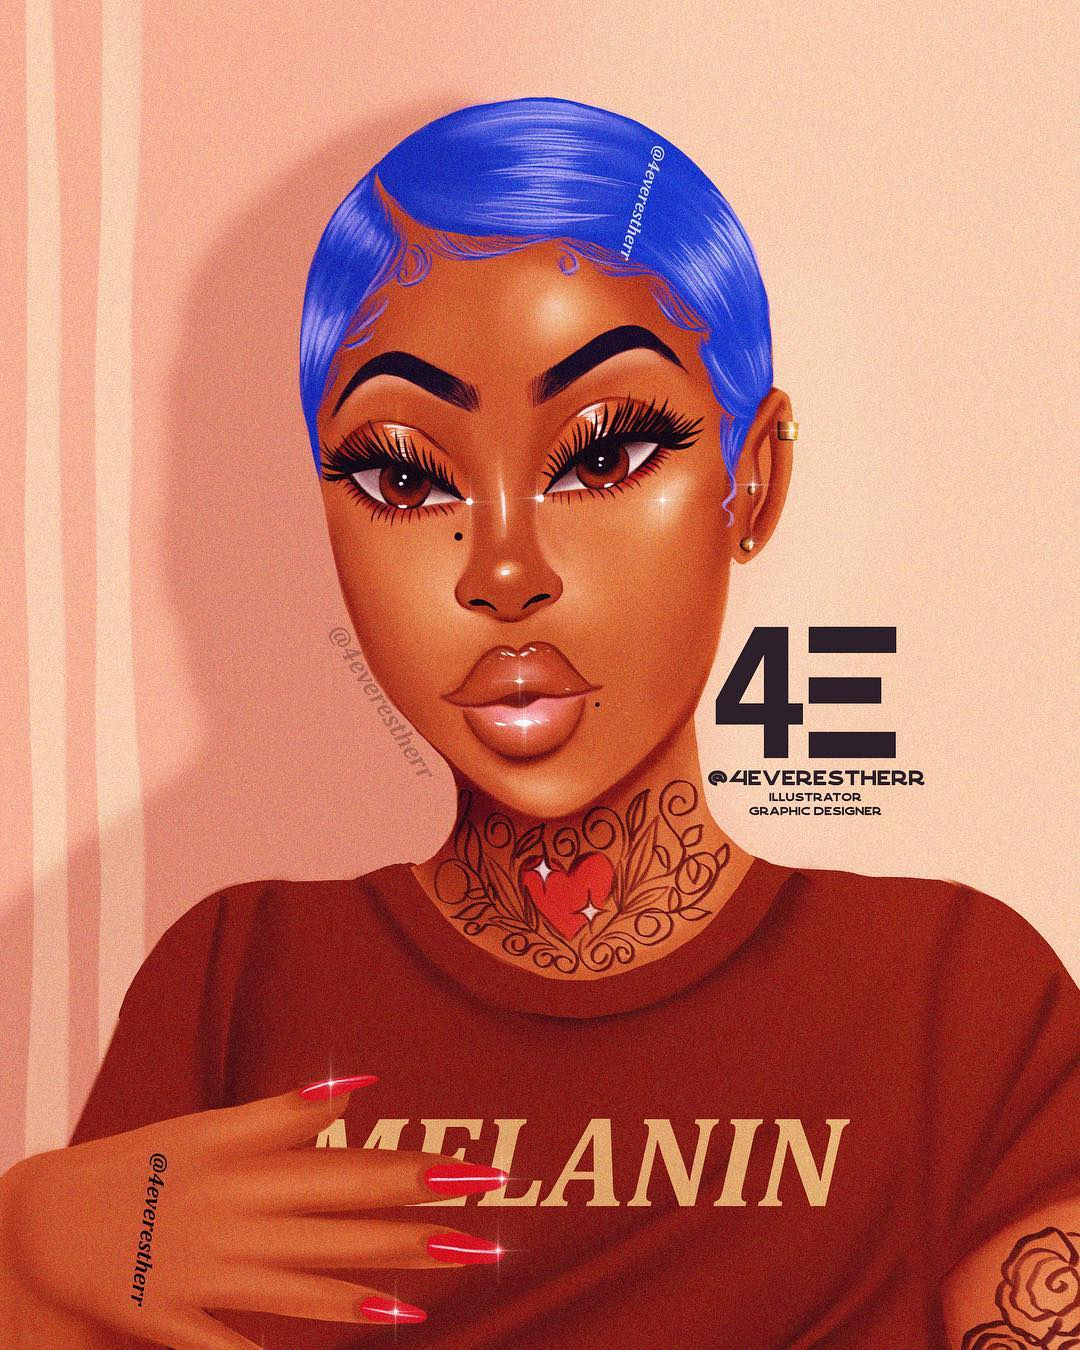 12 Black Digital Artists to Follow On Instagram in 2020 (part 1)